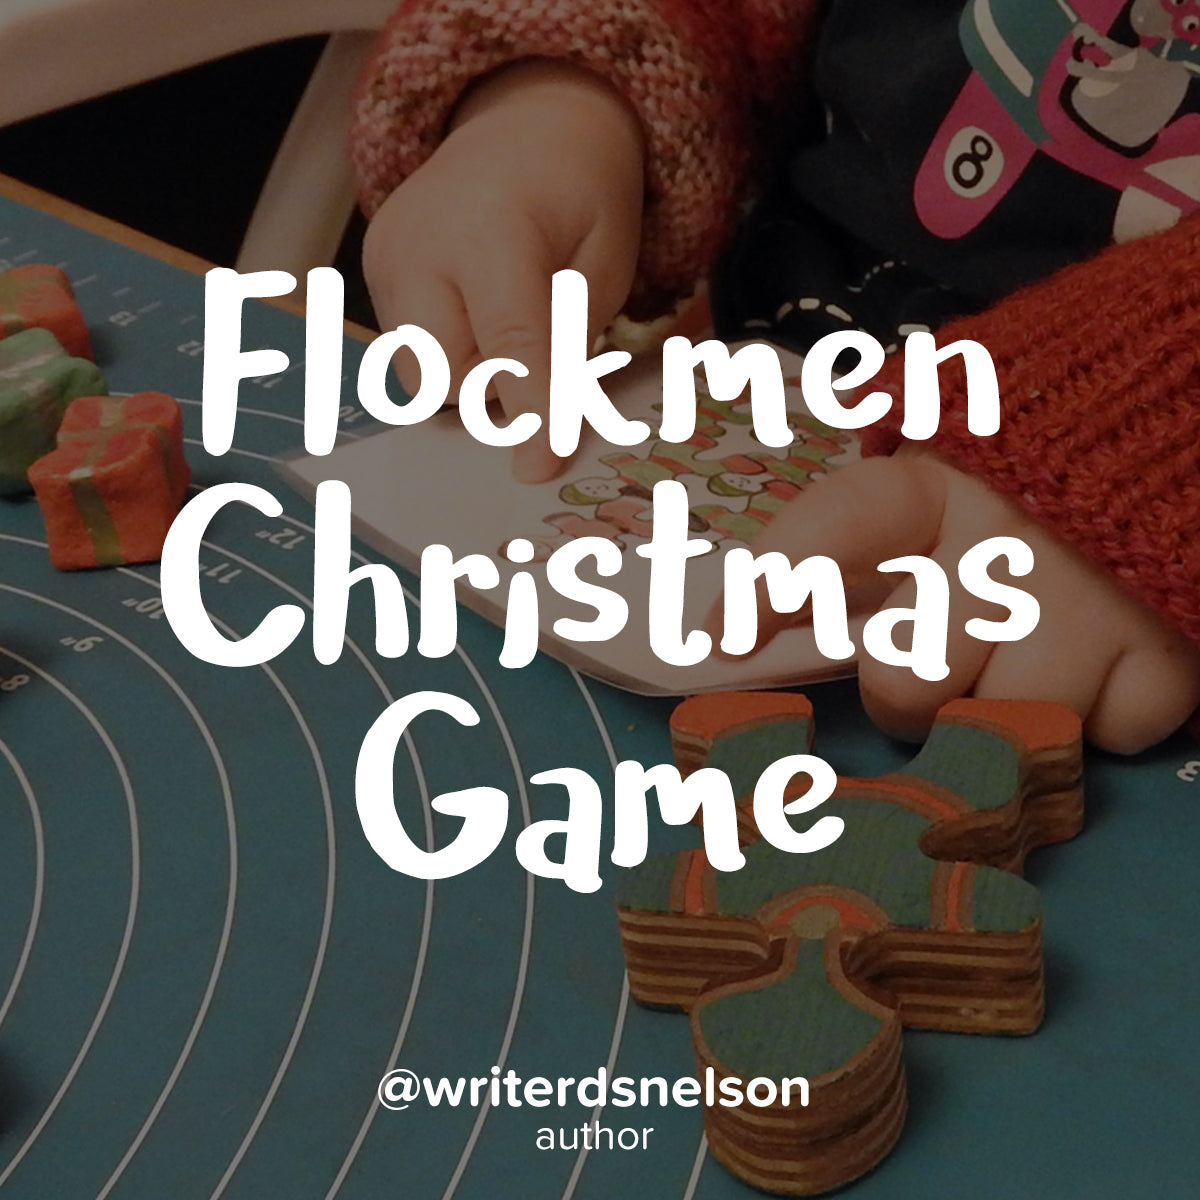 Guide on family creating a Christmas Game from Flockmen